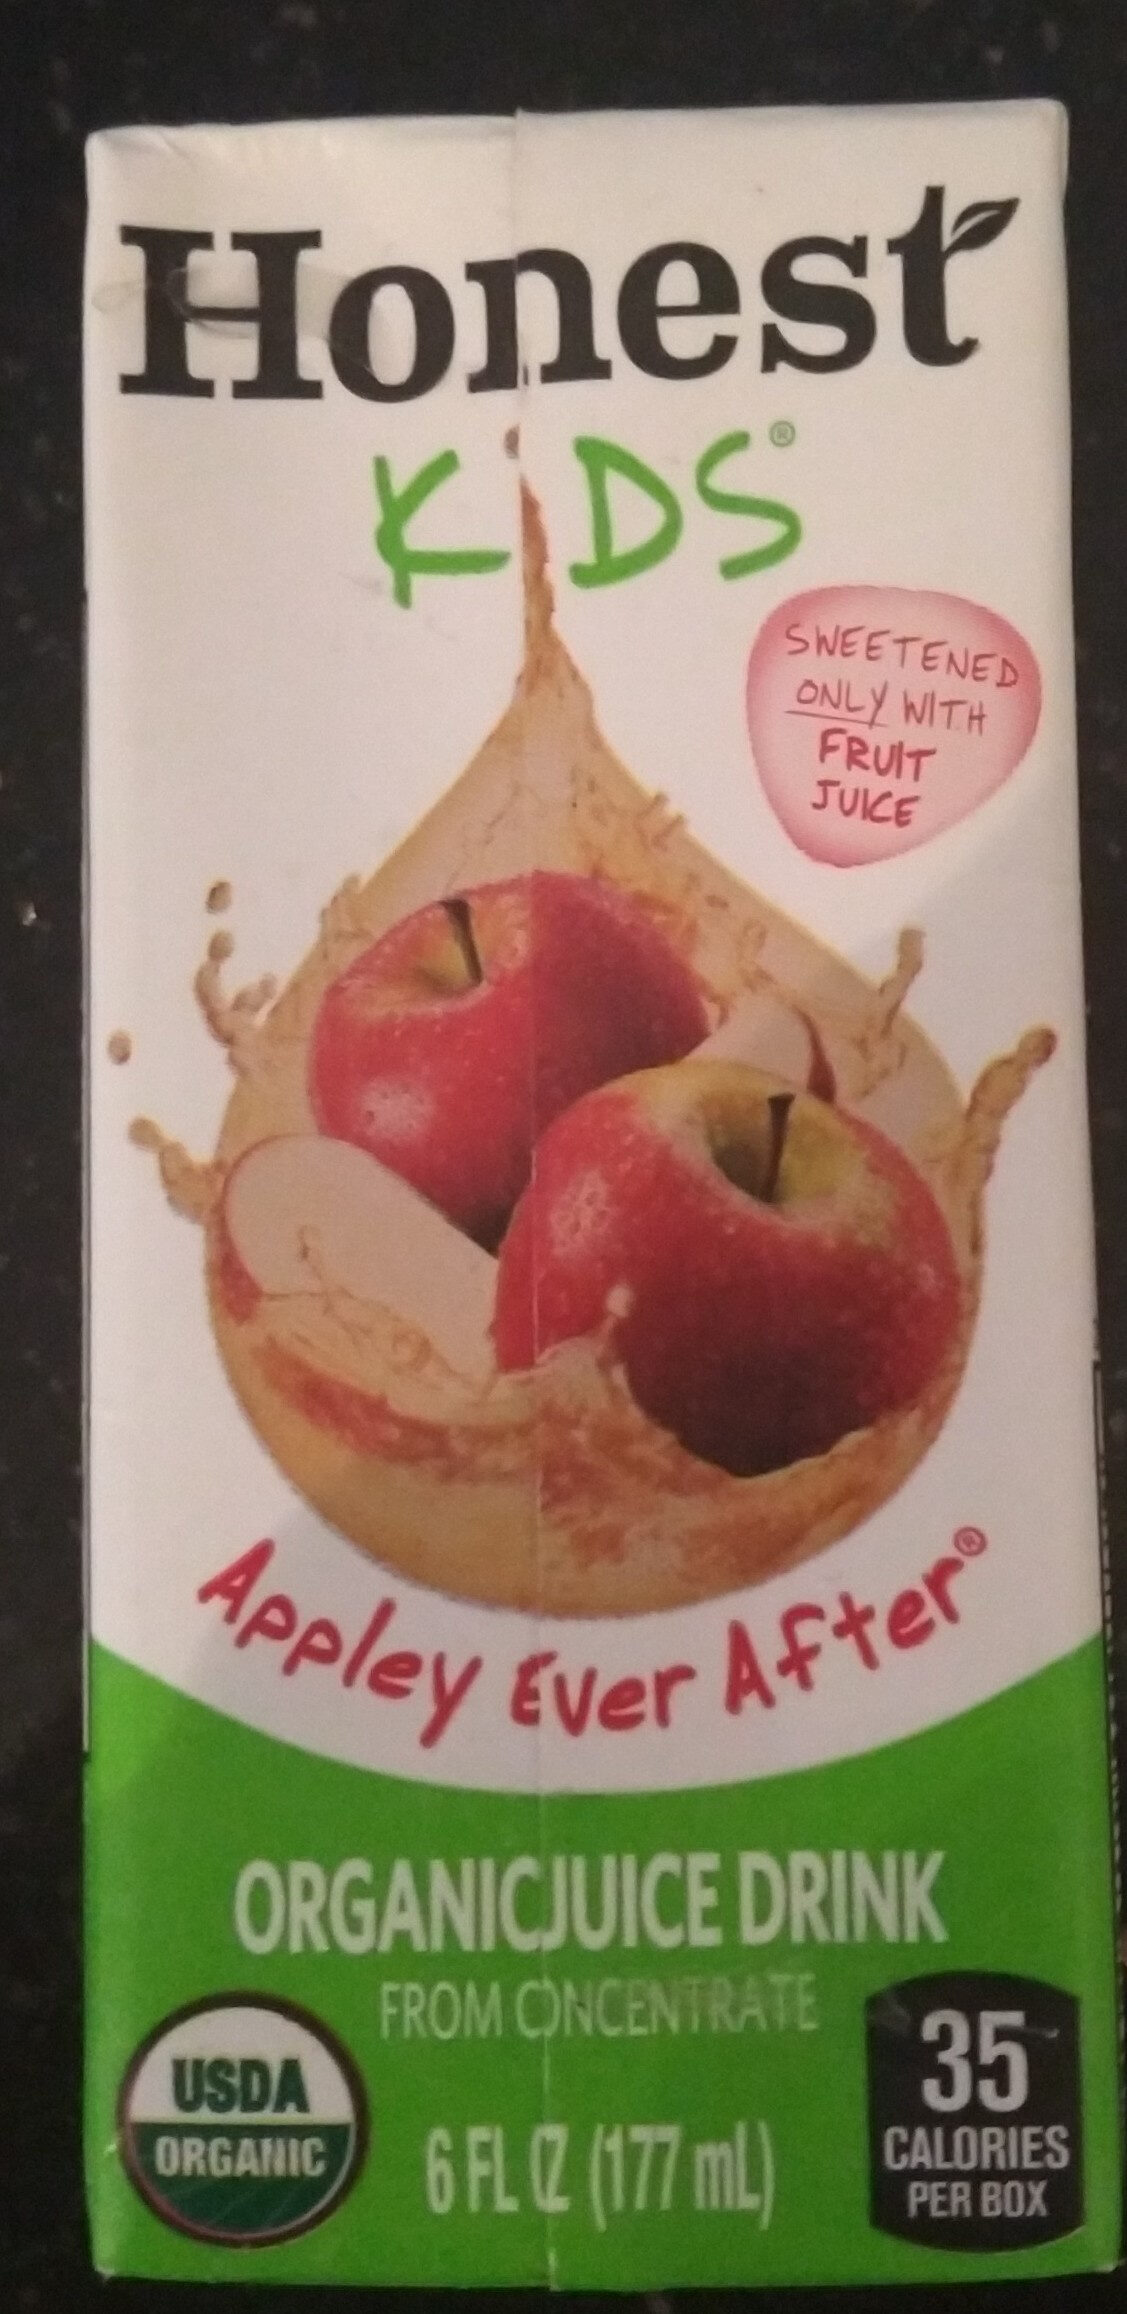 Appley ever after - Product